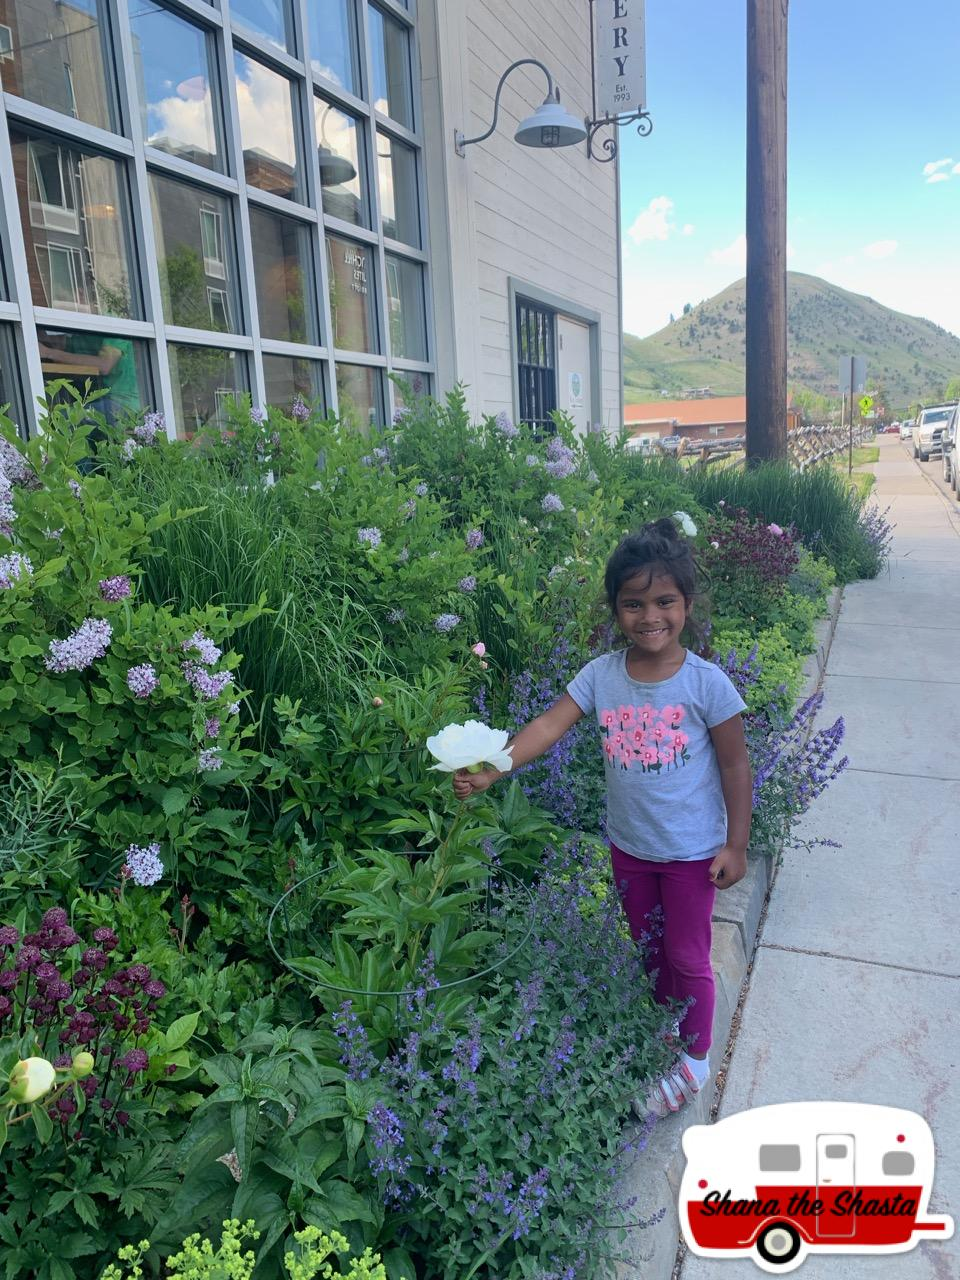 Jackson-Wyoming-Sidewalk-Blooms